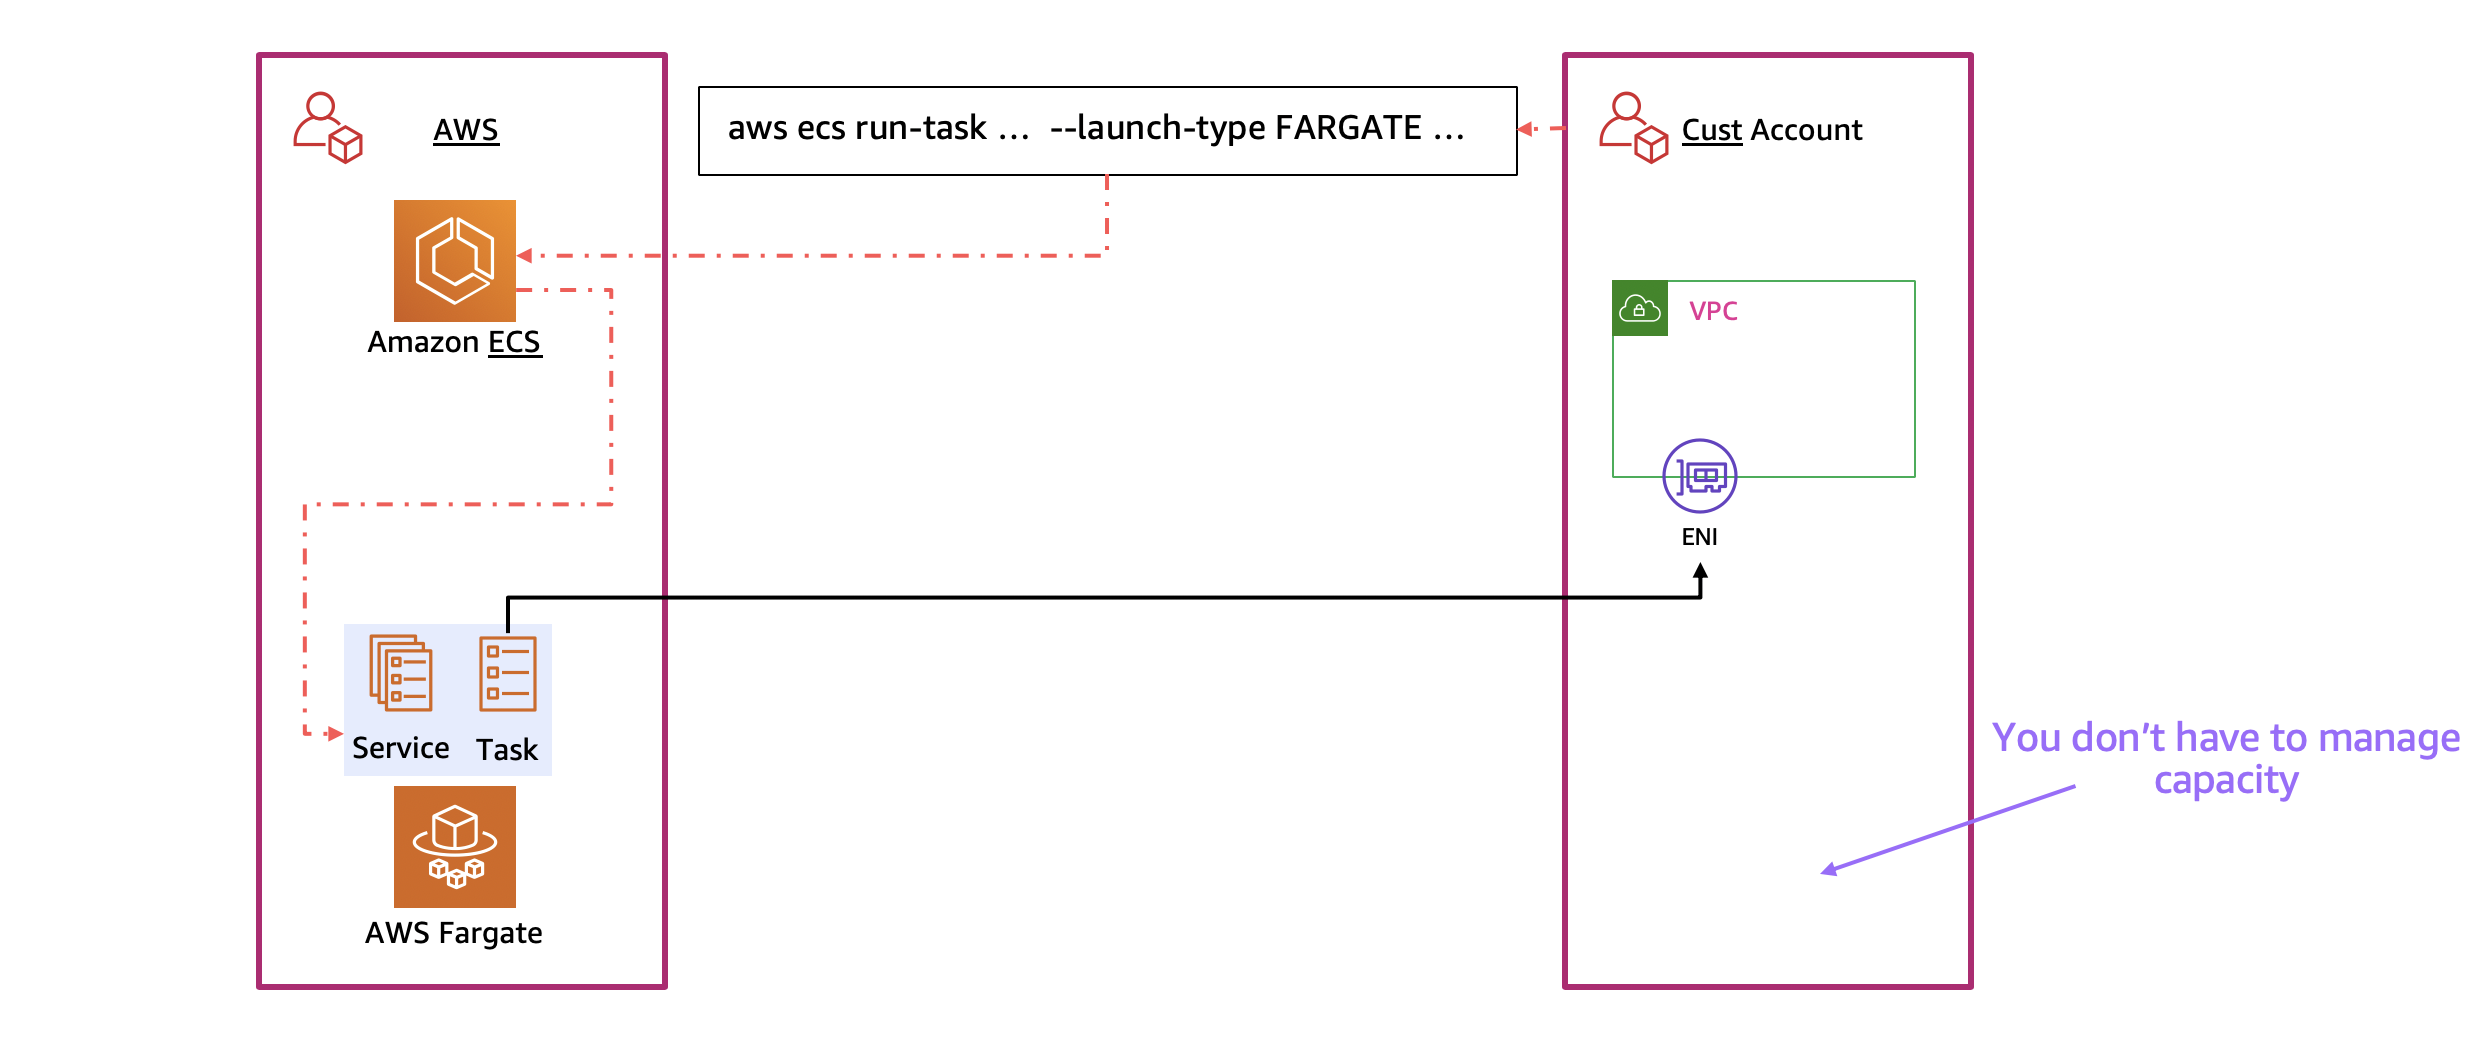 """Diagram showing interactions when launching an ECS task with the Fargate launch type. Three boxes are shown. The one in the middle contains the text """"aws ecs run-task ... -launch-type FARGATE ..."""" and an arrow is drawn to the left-hand box, which is labeled """"AWS"""". The left-hand box contains smaller boxes labeled """"Amazon ECS"""" and """"AWS Fargate"""" as well as a colored area containing the labels """"Service"""" and """"Task"""" placed directly above the AWS Fargate box. An arrow is drawn from the Amazon ECS box to the colored area with """"Service"""" and """"Task"""" labels. An arrow is drawn from the """"Task"""" label to the right-hand box labeled """"Cust Account"""" and an element inside the box labeled """"ENI""""."""